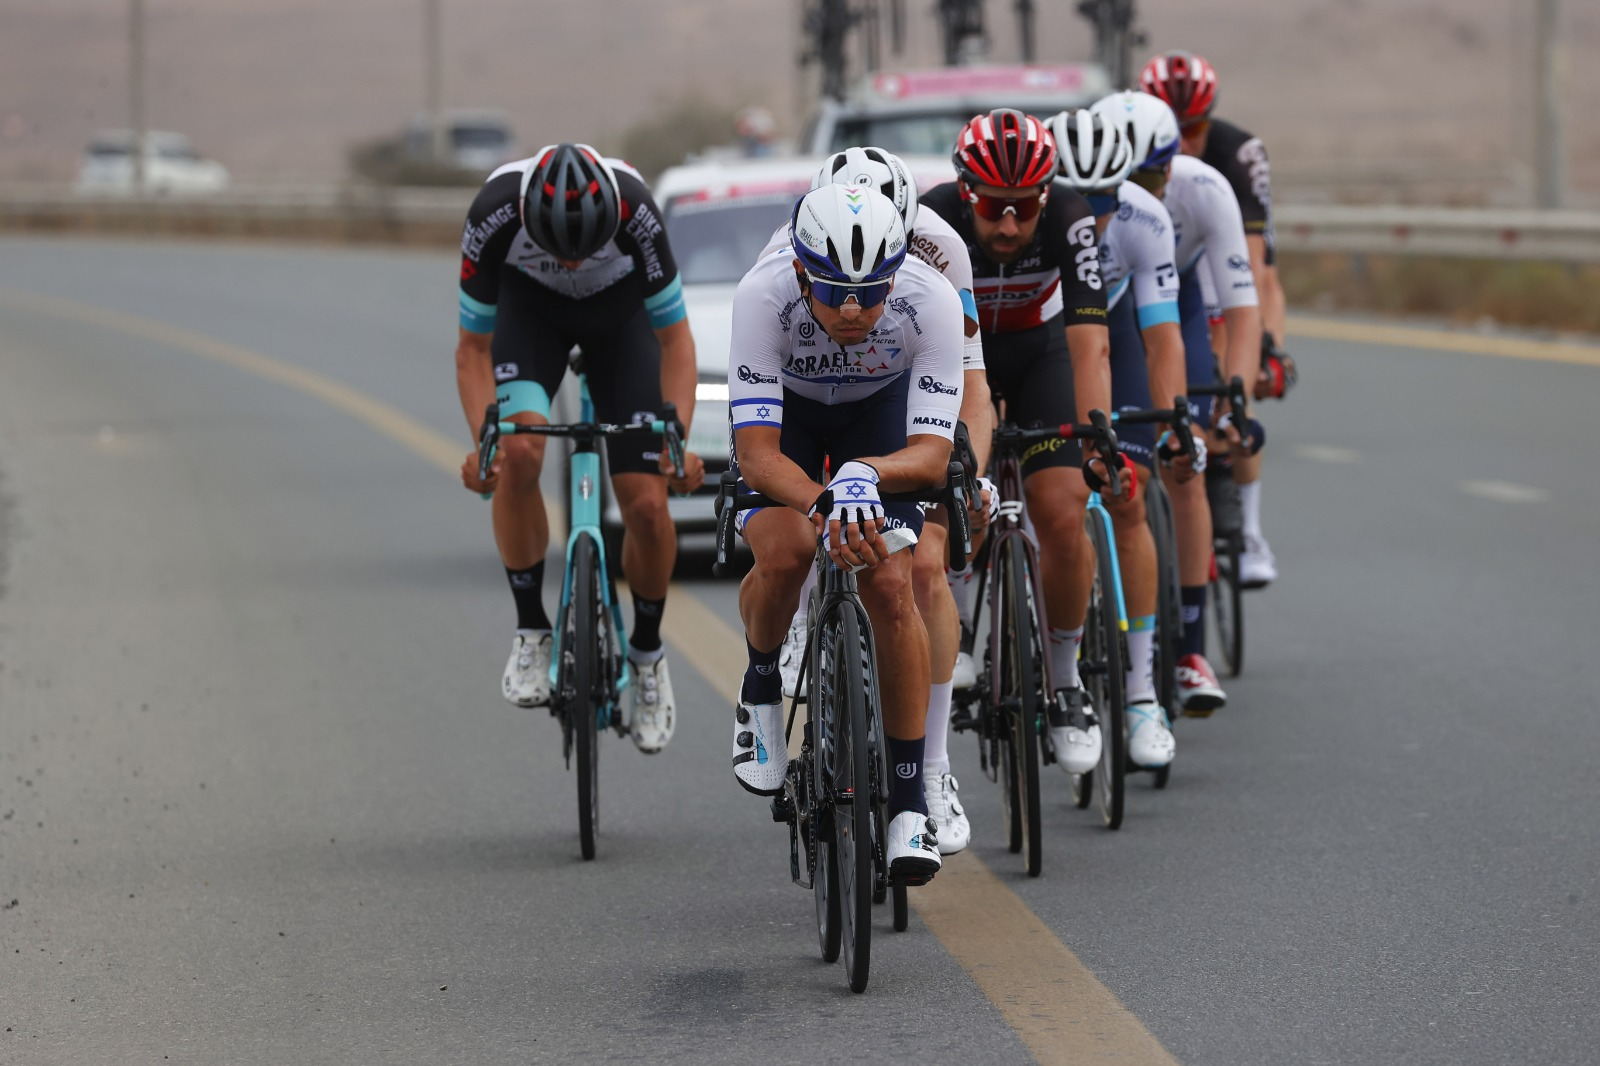 Goldstein and Dowsett break away in UAE, Hermans and Froome continue to improve performances